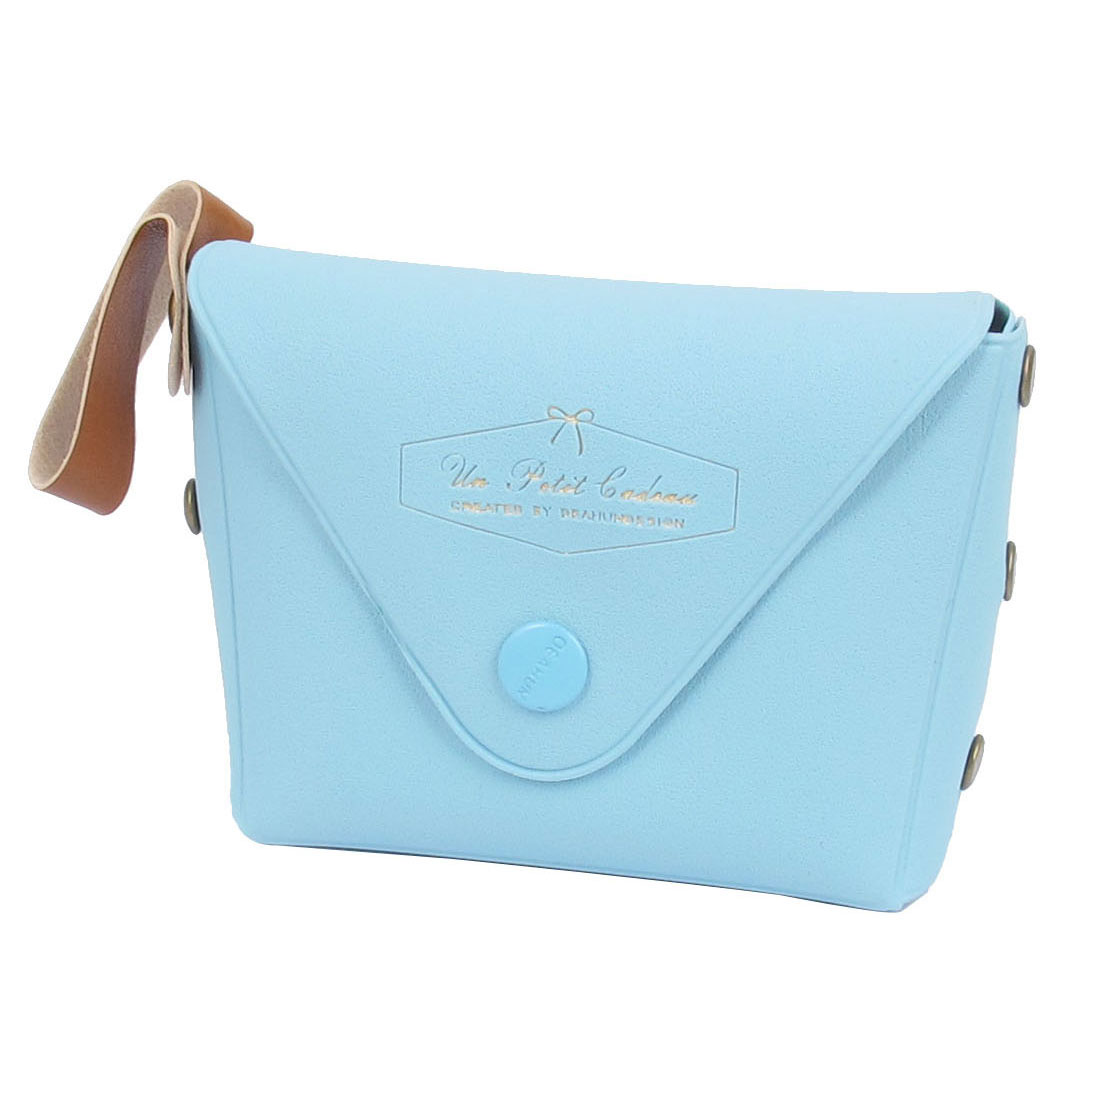 "3.7"" Length Baby Blue Faux Leather Cute Mini Single Compartment English Words Pattern Portable Change Coin Purse Cash Key for Kids Ladies"